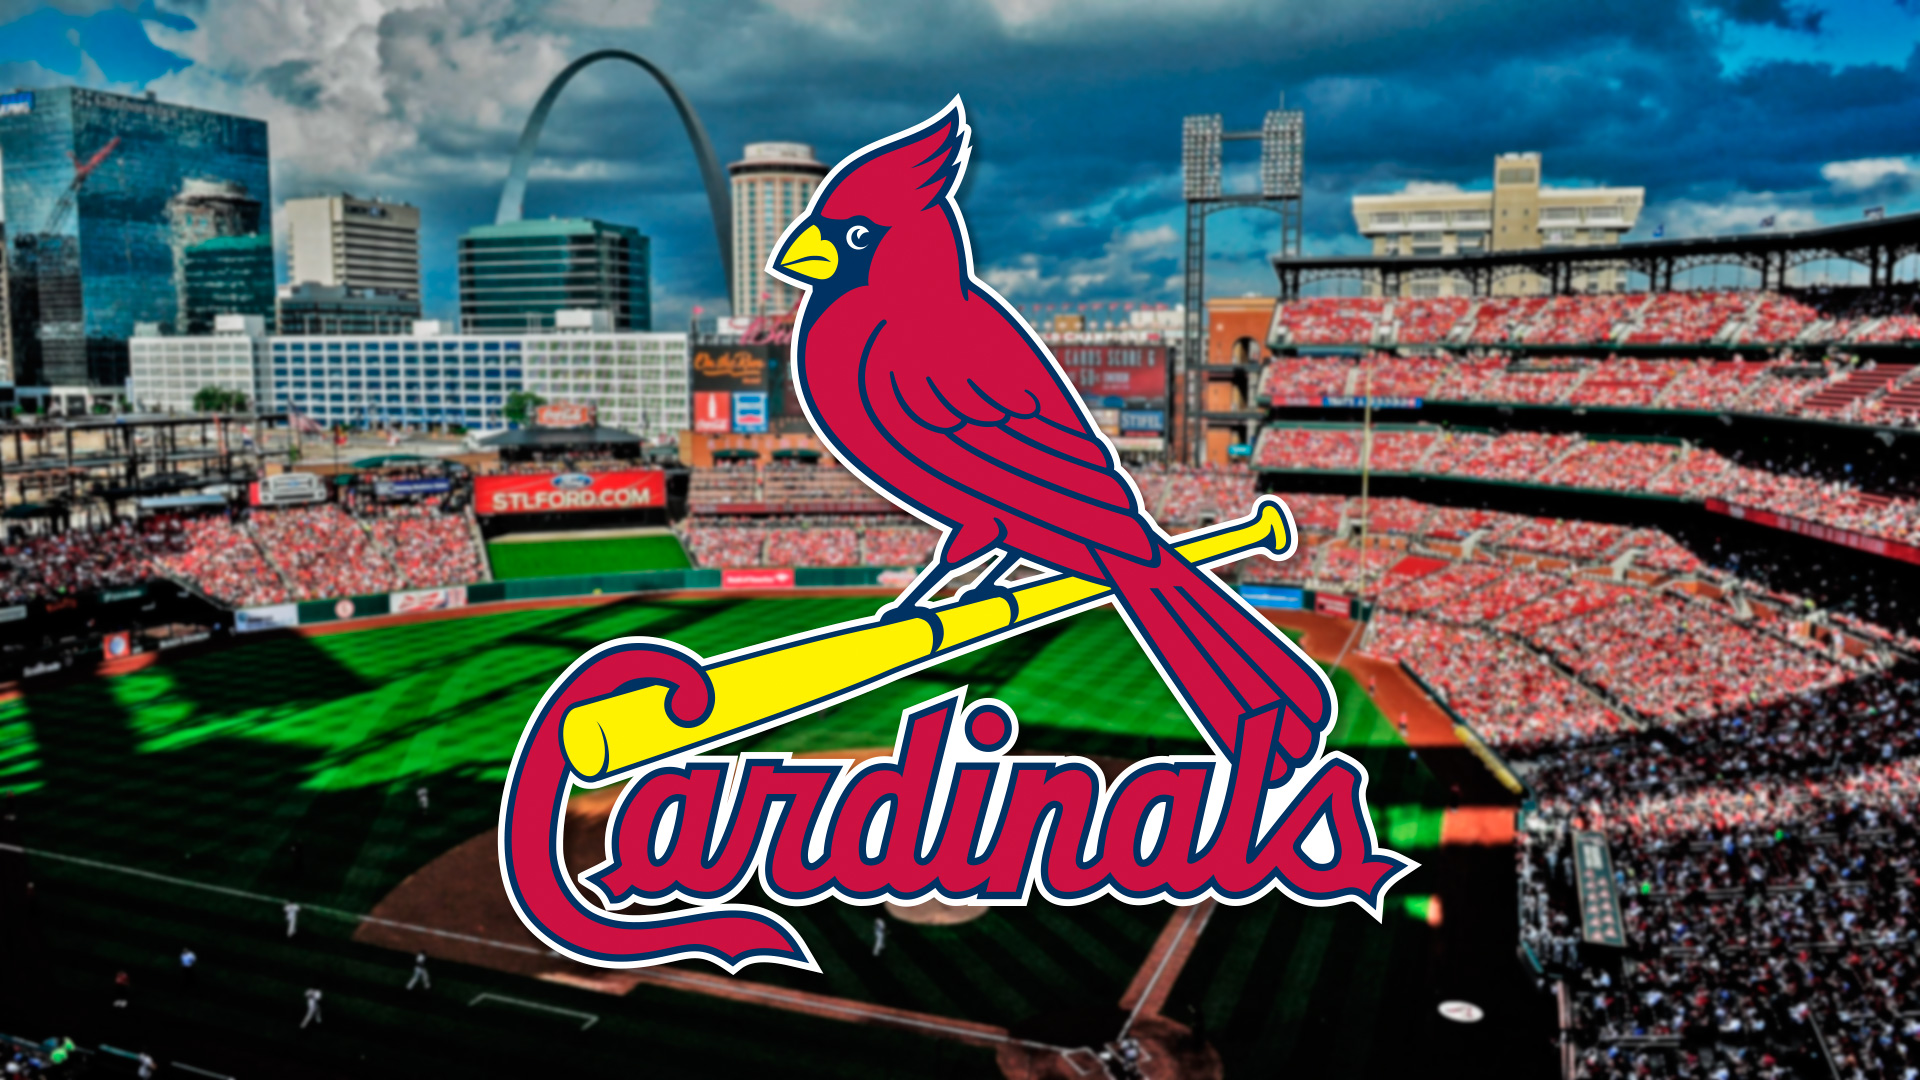 Free Download St Louis Cardinals Logo Backgrounds 1920x1080 For